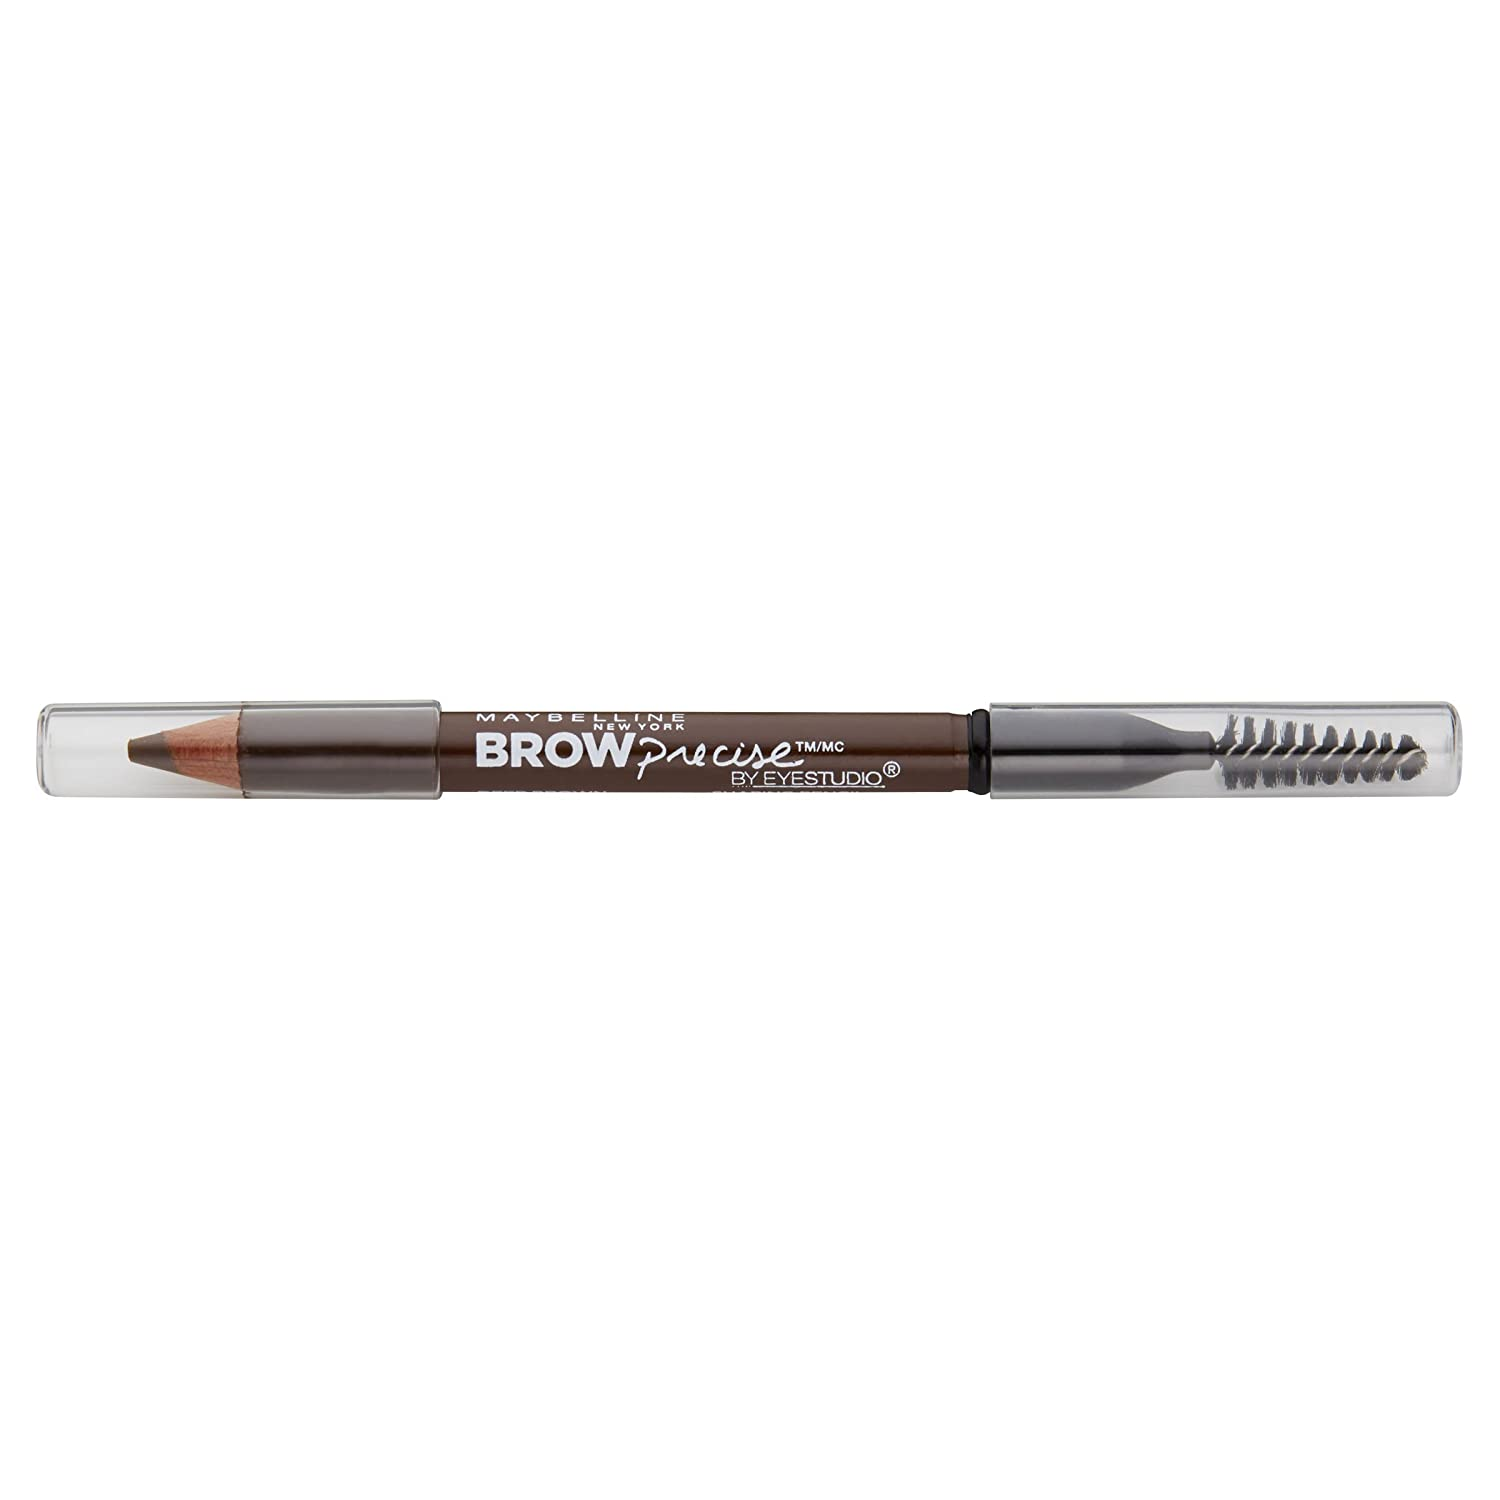 WHOLESALE MAYBELLINE BROW PRECISE SHAPING EYEBROW PENCIL - SOFT BROWN 255 - 48 PIECE LOT